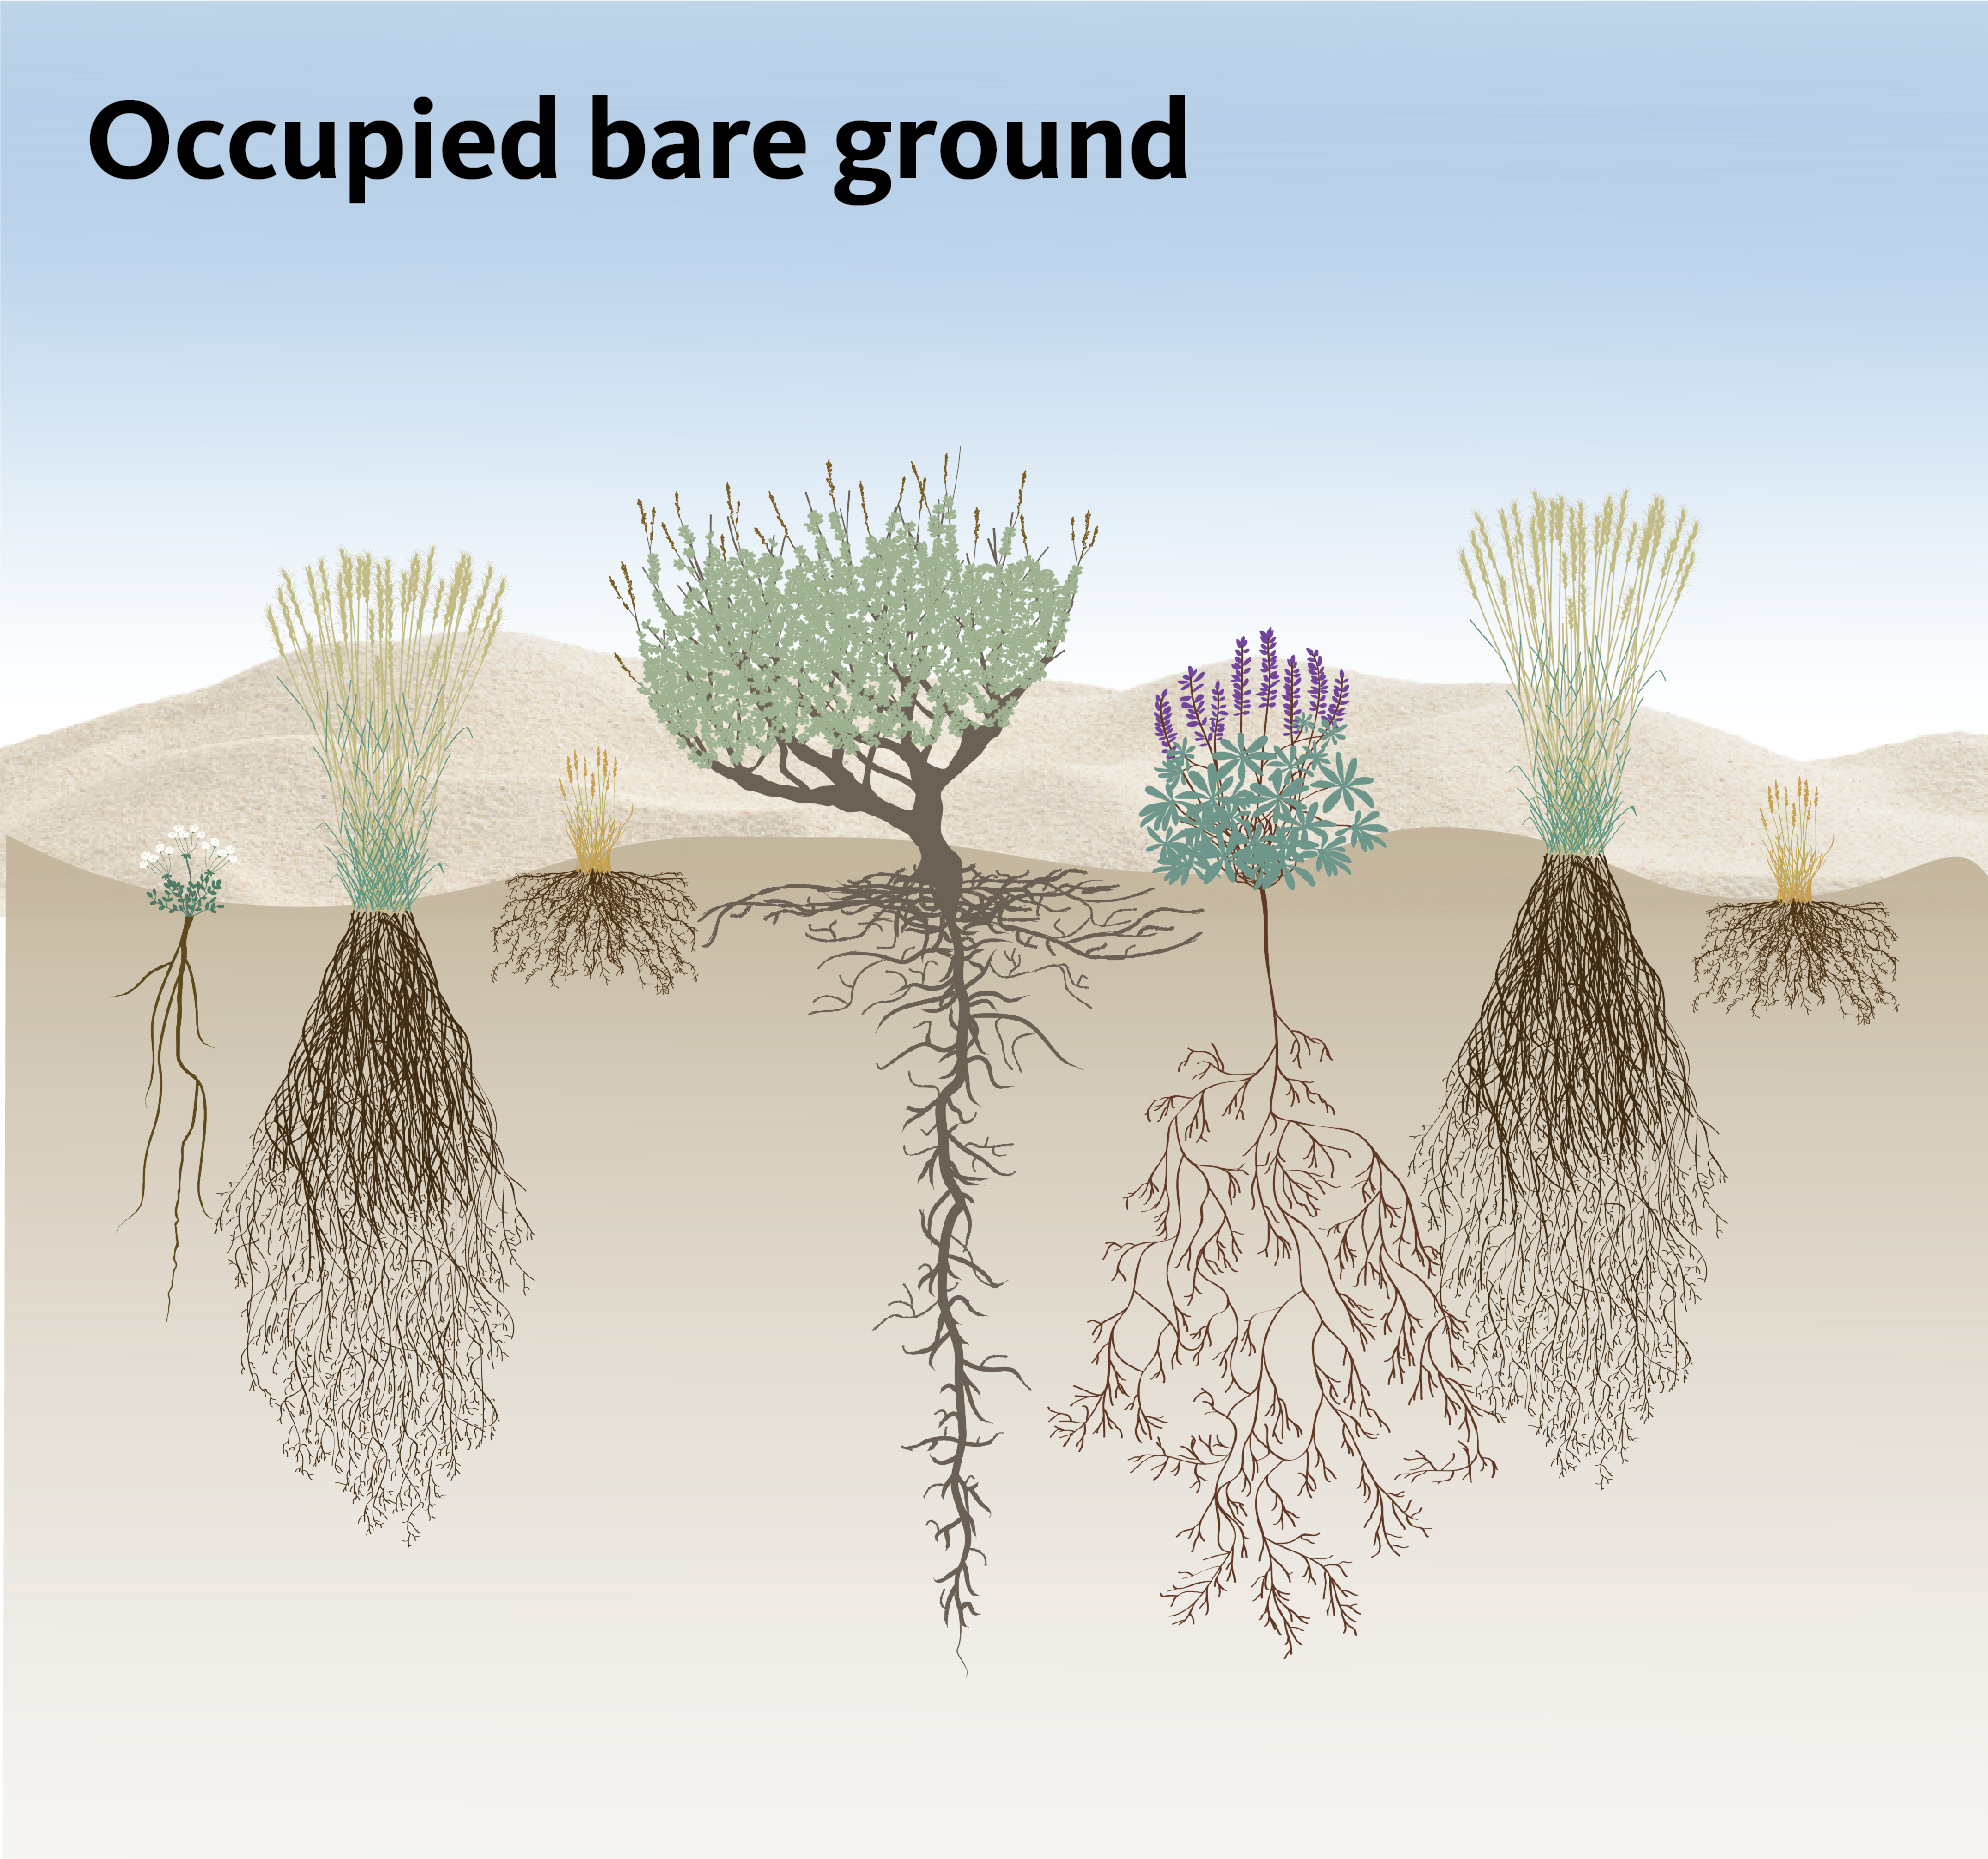 Figure 4. An example of a healthy sagebrush steppe with all niches filled by plants of different functional groups. Areas of bare ground appear between perennial plants. An underground view shows resources are being fully utilized.